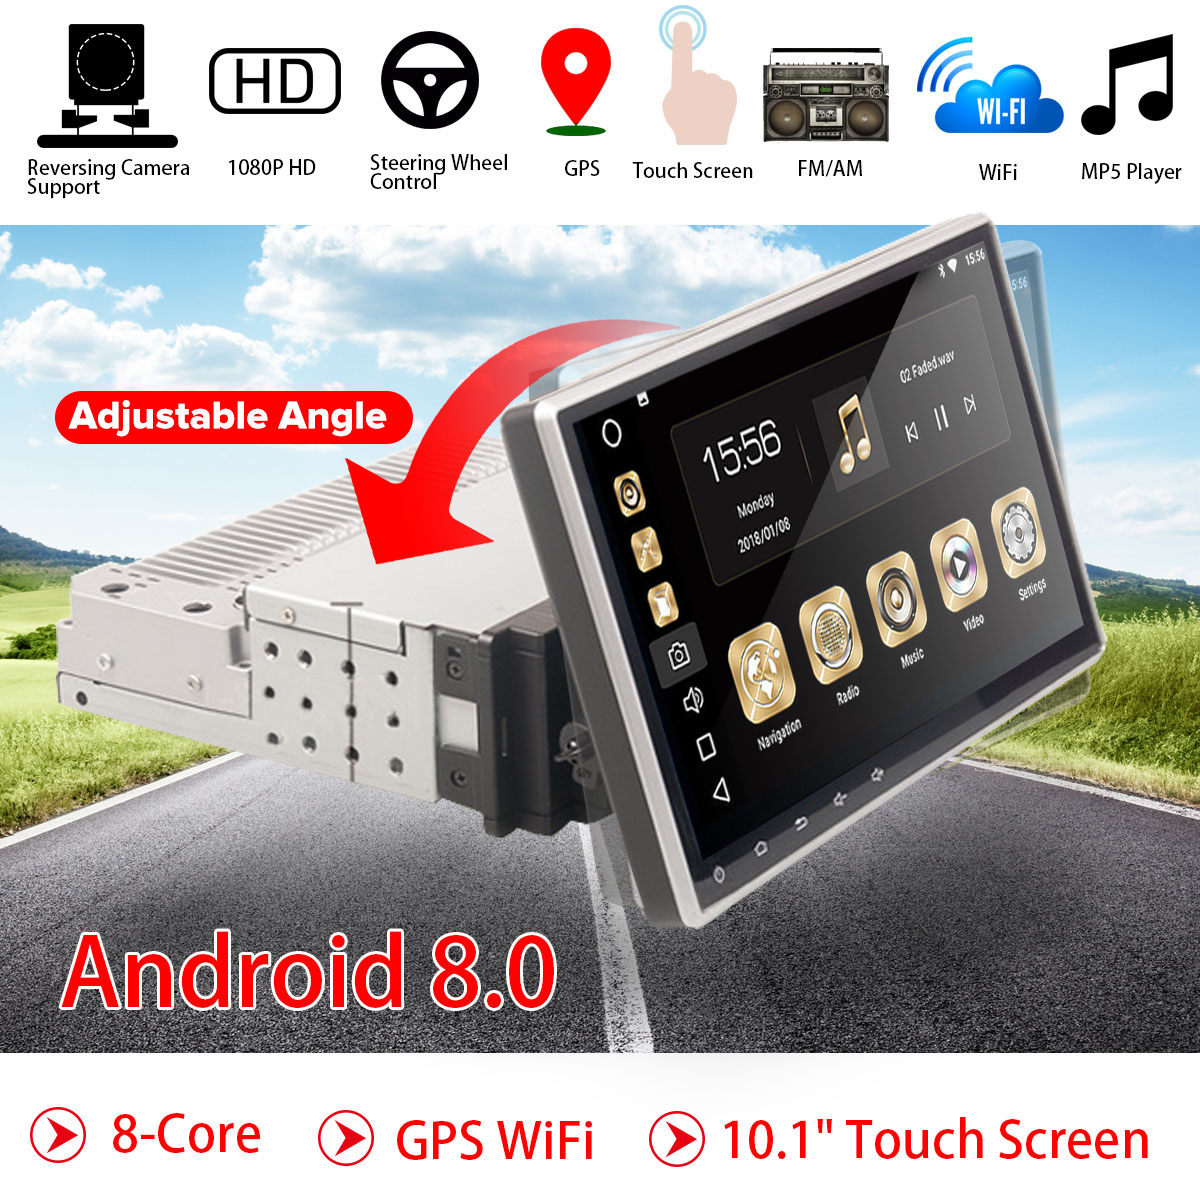 10.1 Android 8.0 Car Radio 1 Din 8Core Stereo Receiver GPS Stereo Wifi bluetooth RDS Audio Universal Car Multimedia Player10.1 Android 8.0 Car Radio 1 Din 8Core Stereo Receiver GPS Stereo Wifi bluetooth RDS Audio Universal Car Multimedia Player